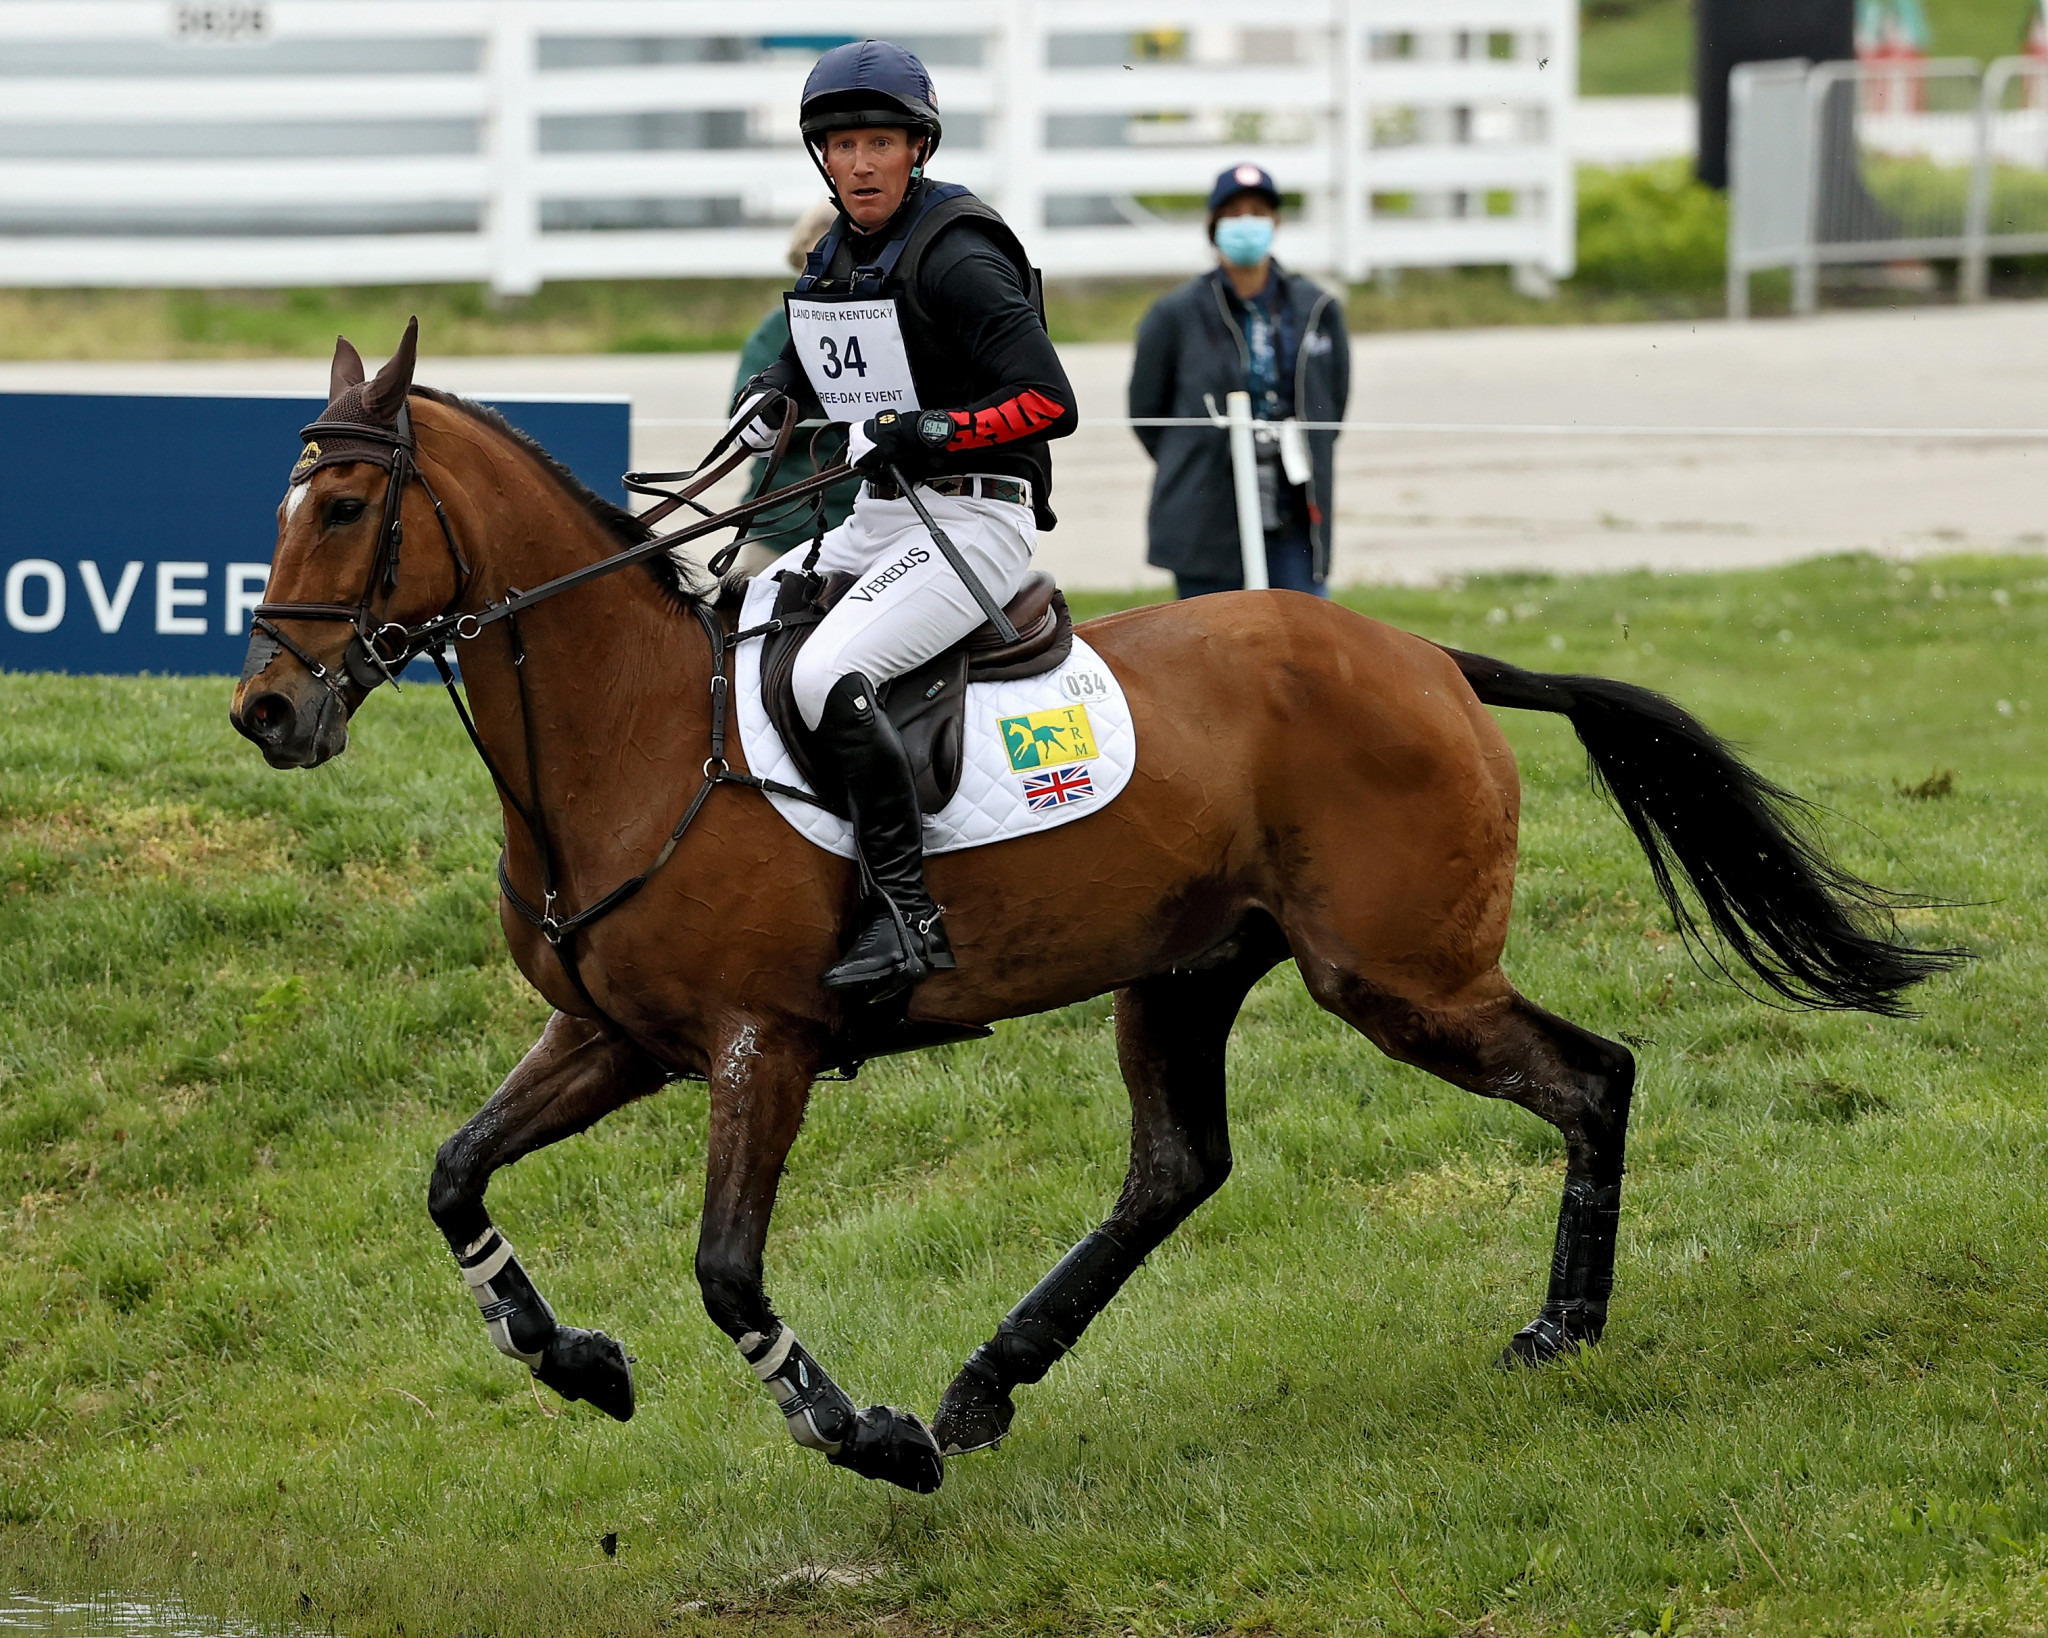 Townend stars in cross-country to take lead at Kentucky Three-Day Event